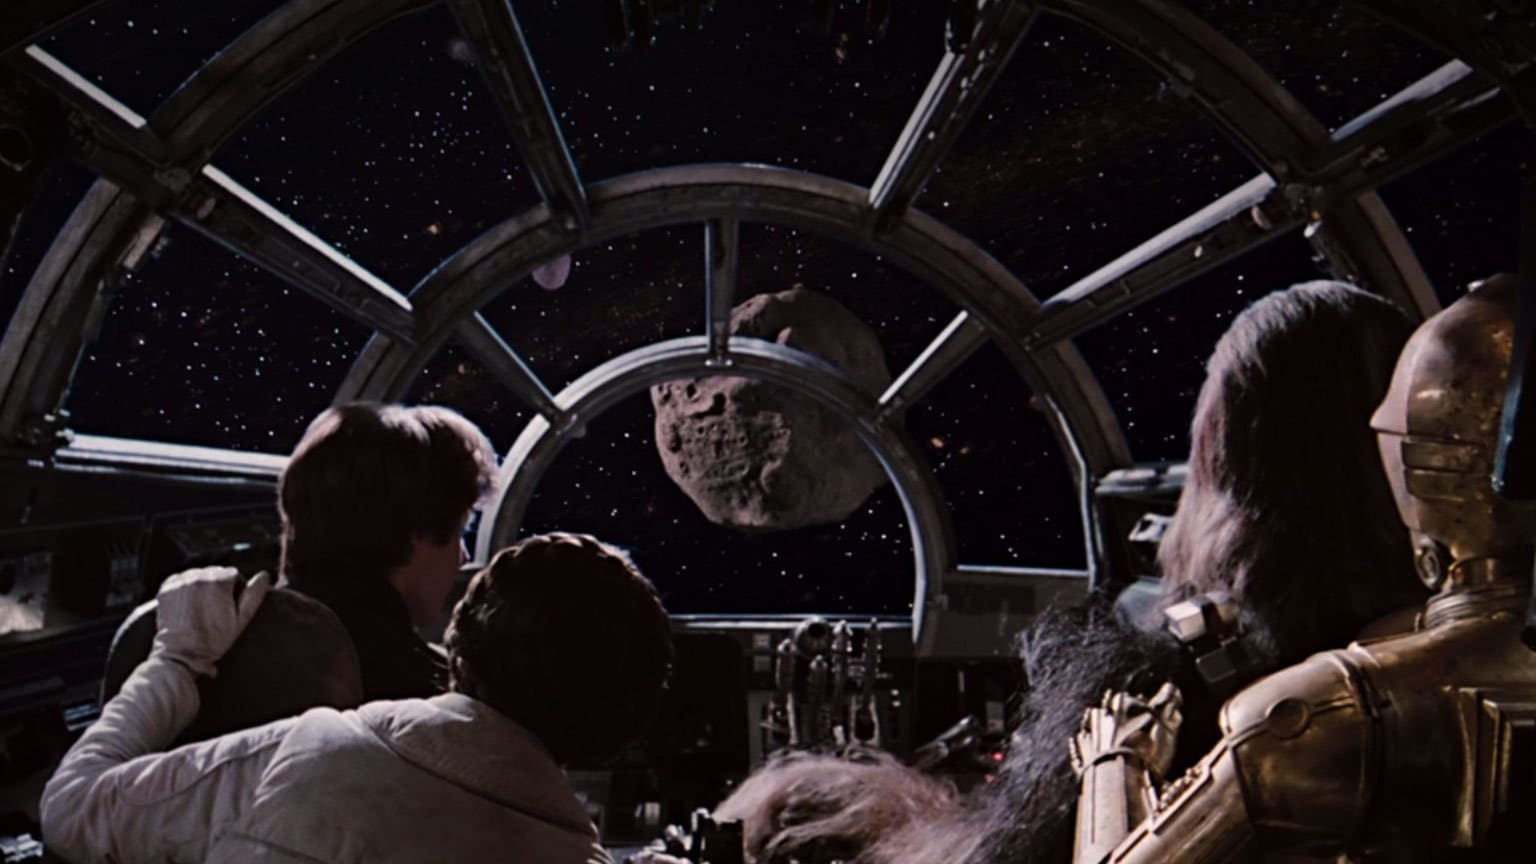 Empire at 40 | 6 Things We Learned from ILM's Livestream Celebration of Empire at 40